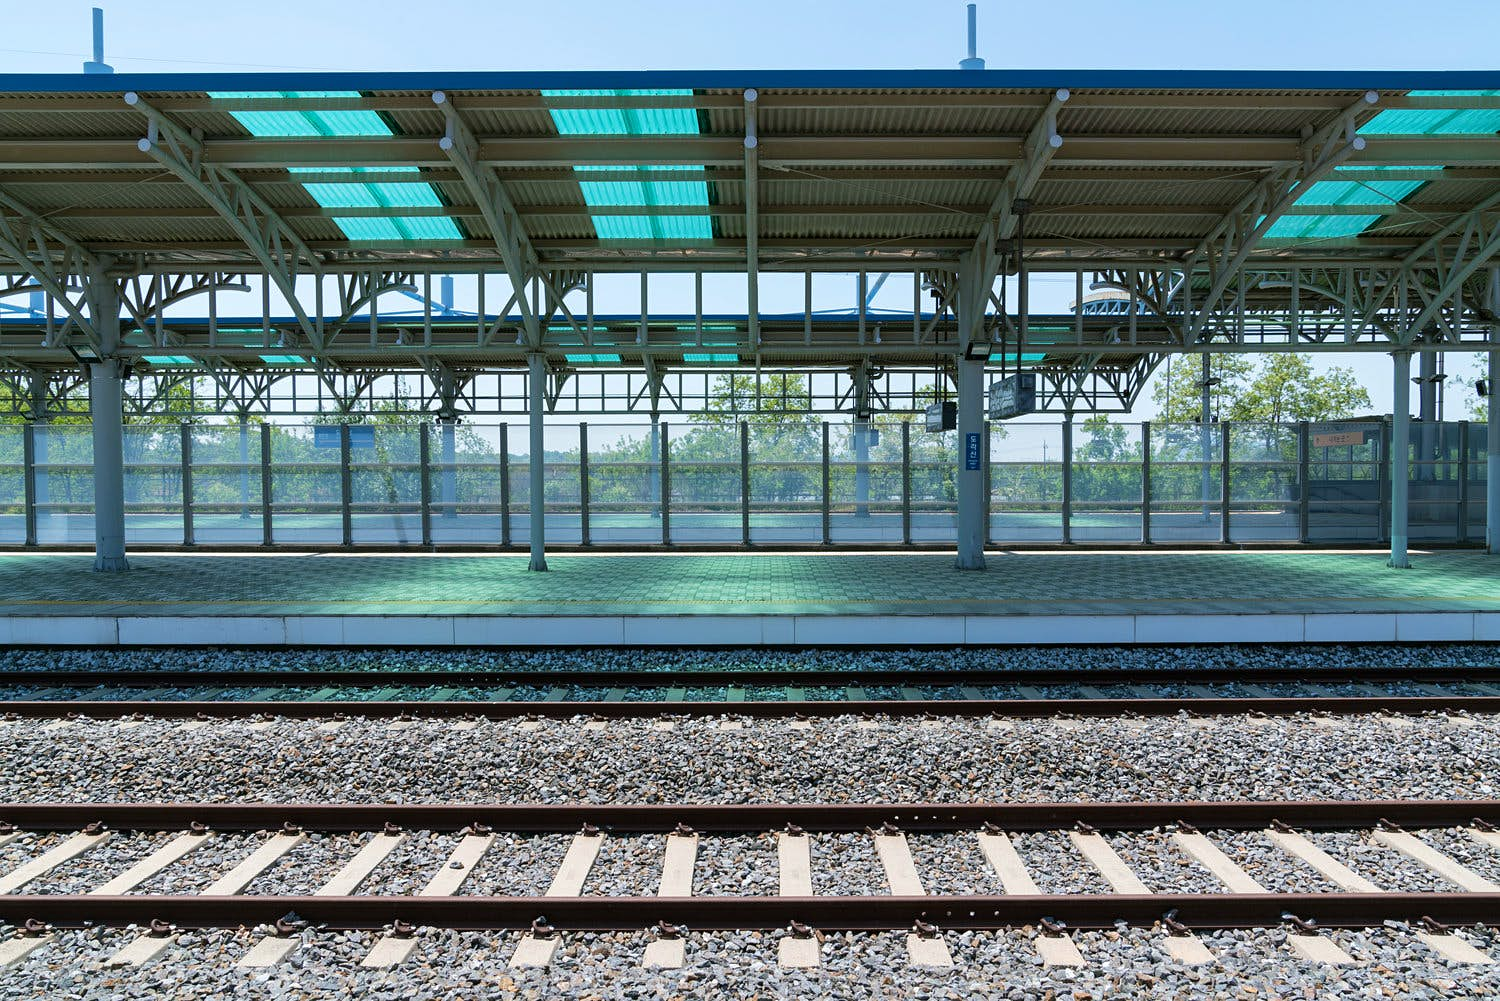 An empty platform at the abandoned Dorasan Station, in Korea. Glass paneling separates the platform from woodland outside, while a track is visible in front.